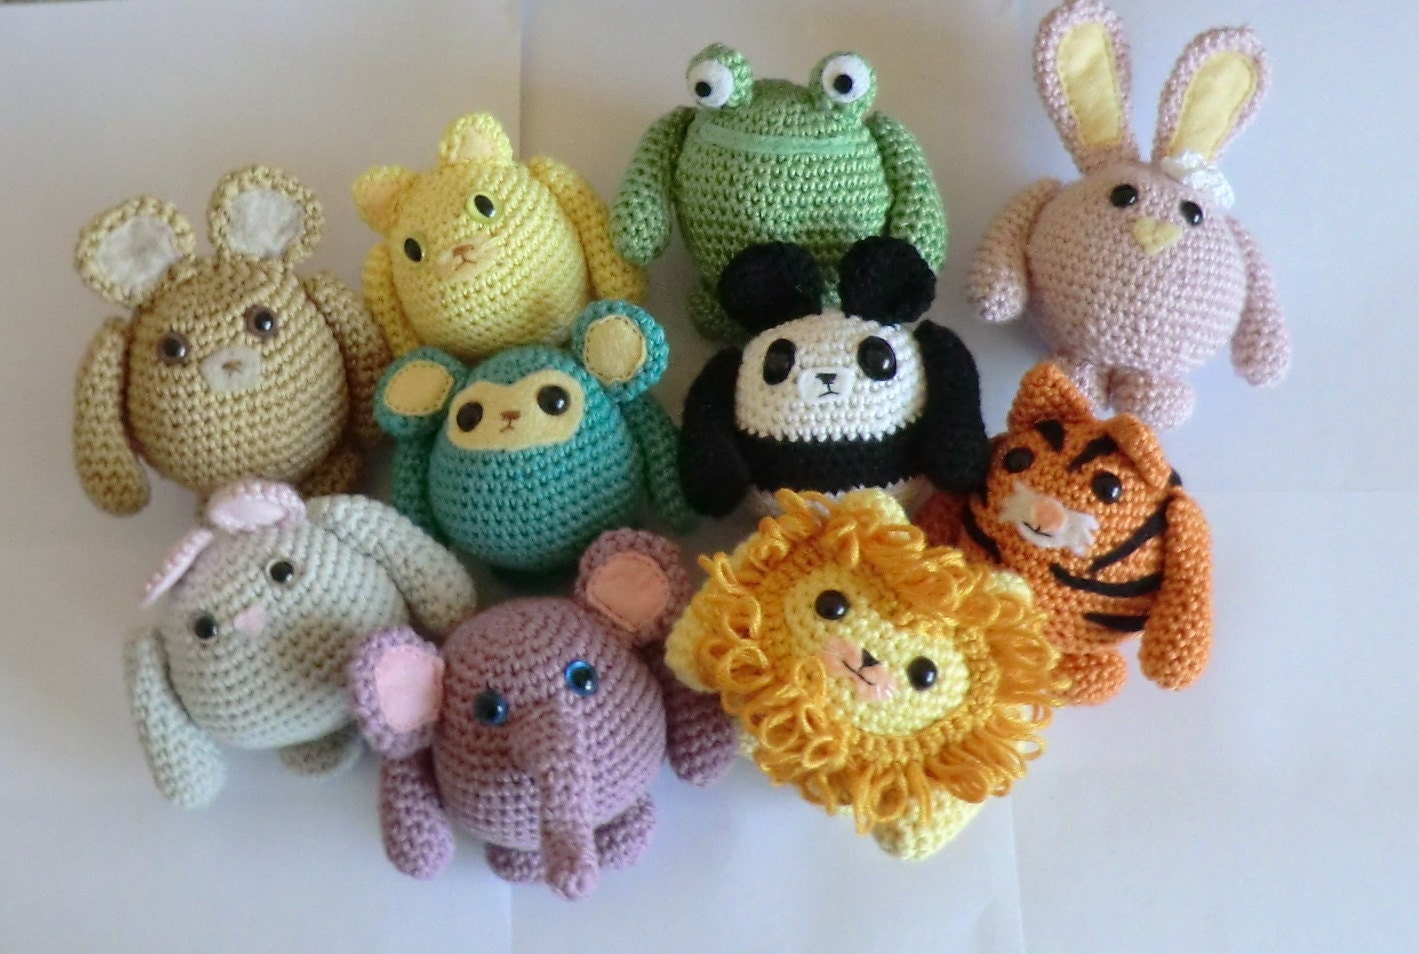 Fat friends animal amigurumi PDF crochet patterns all 10 cat